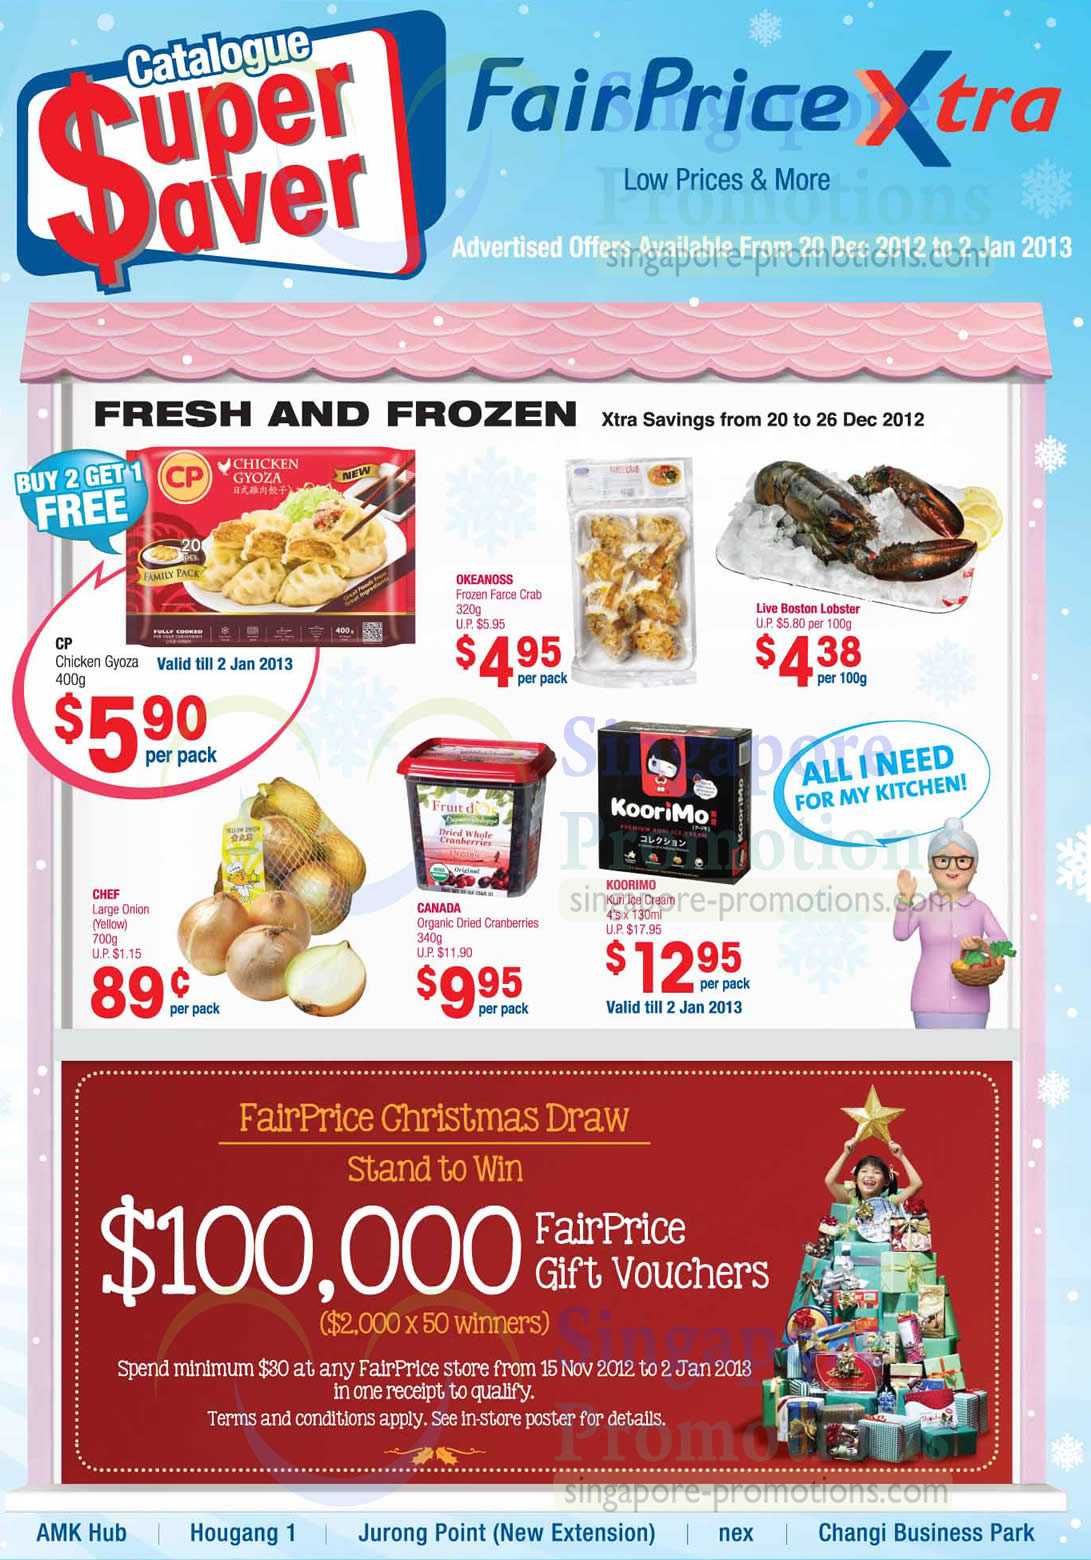 FairPrice Christmas Draw, Fresh and Frozen